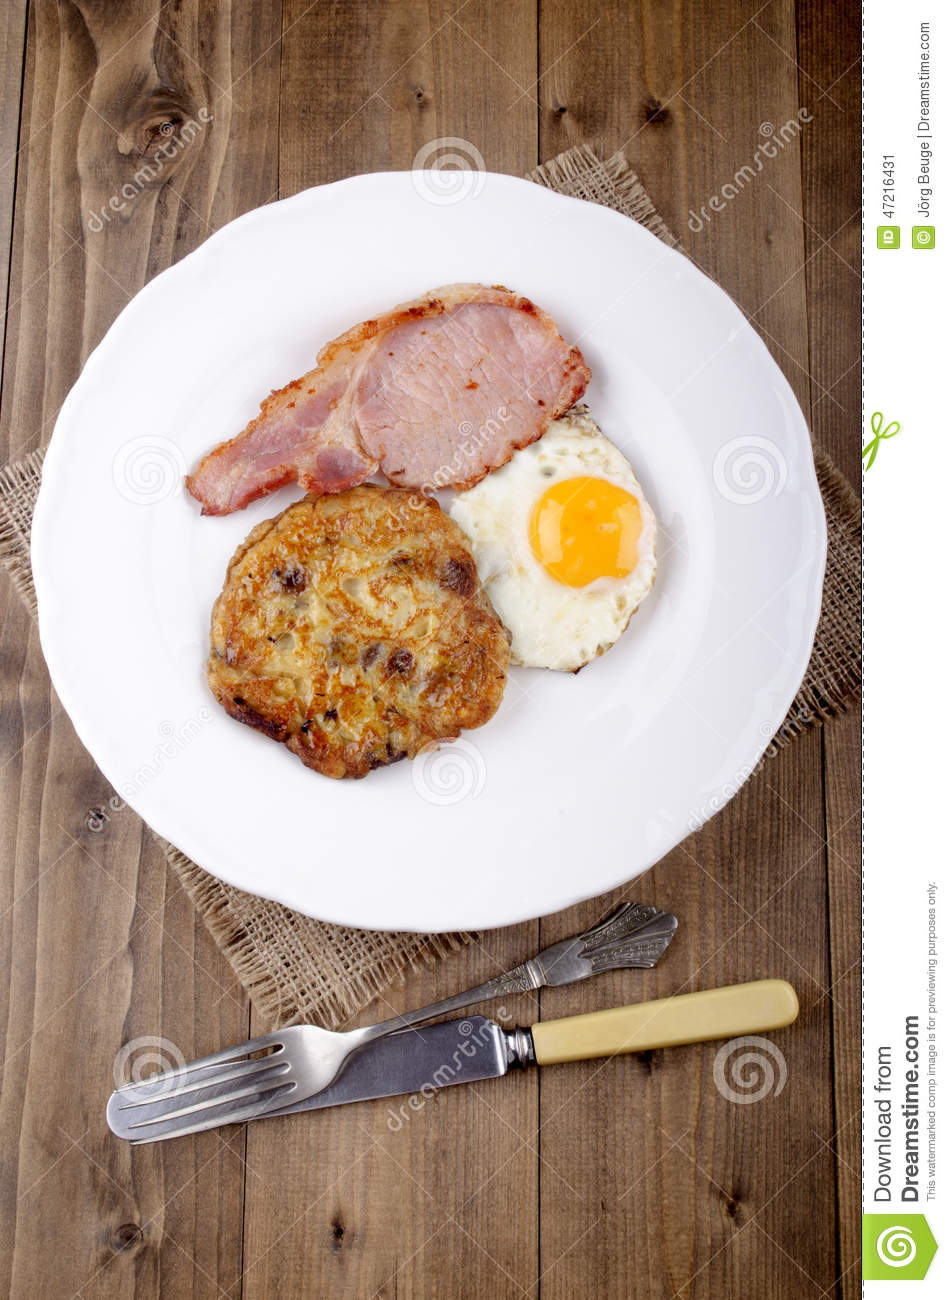 Boxty With Fried Egg And Bacon Stock Photo - Image: 47216431